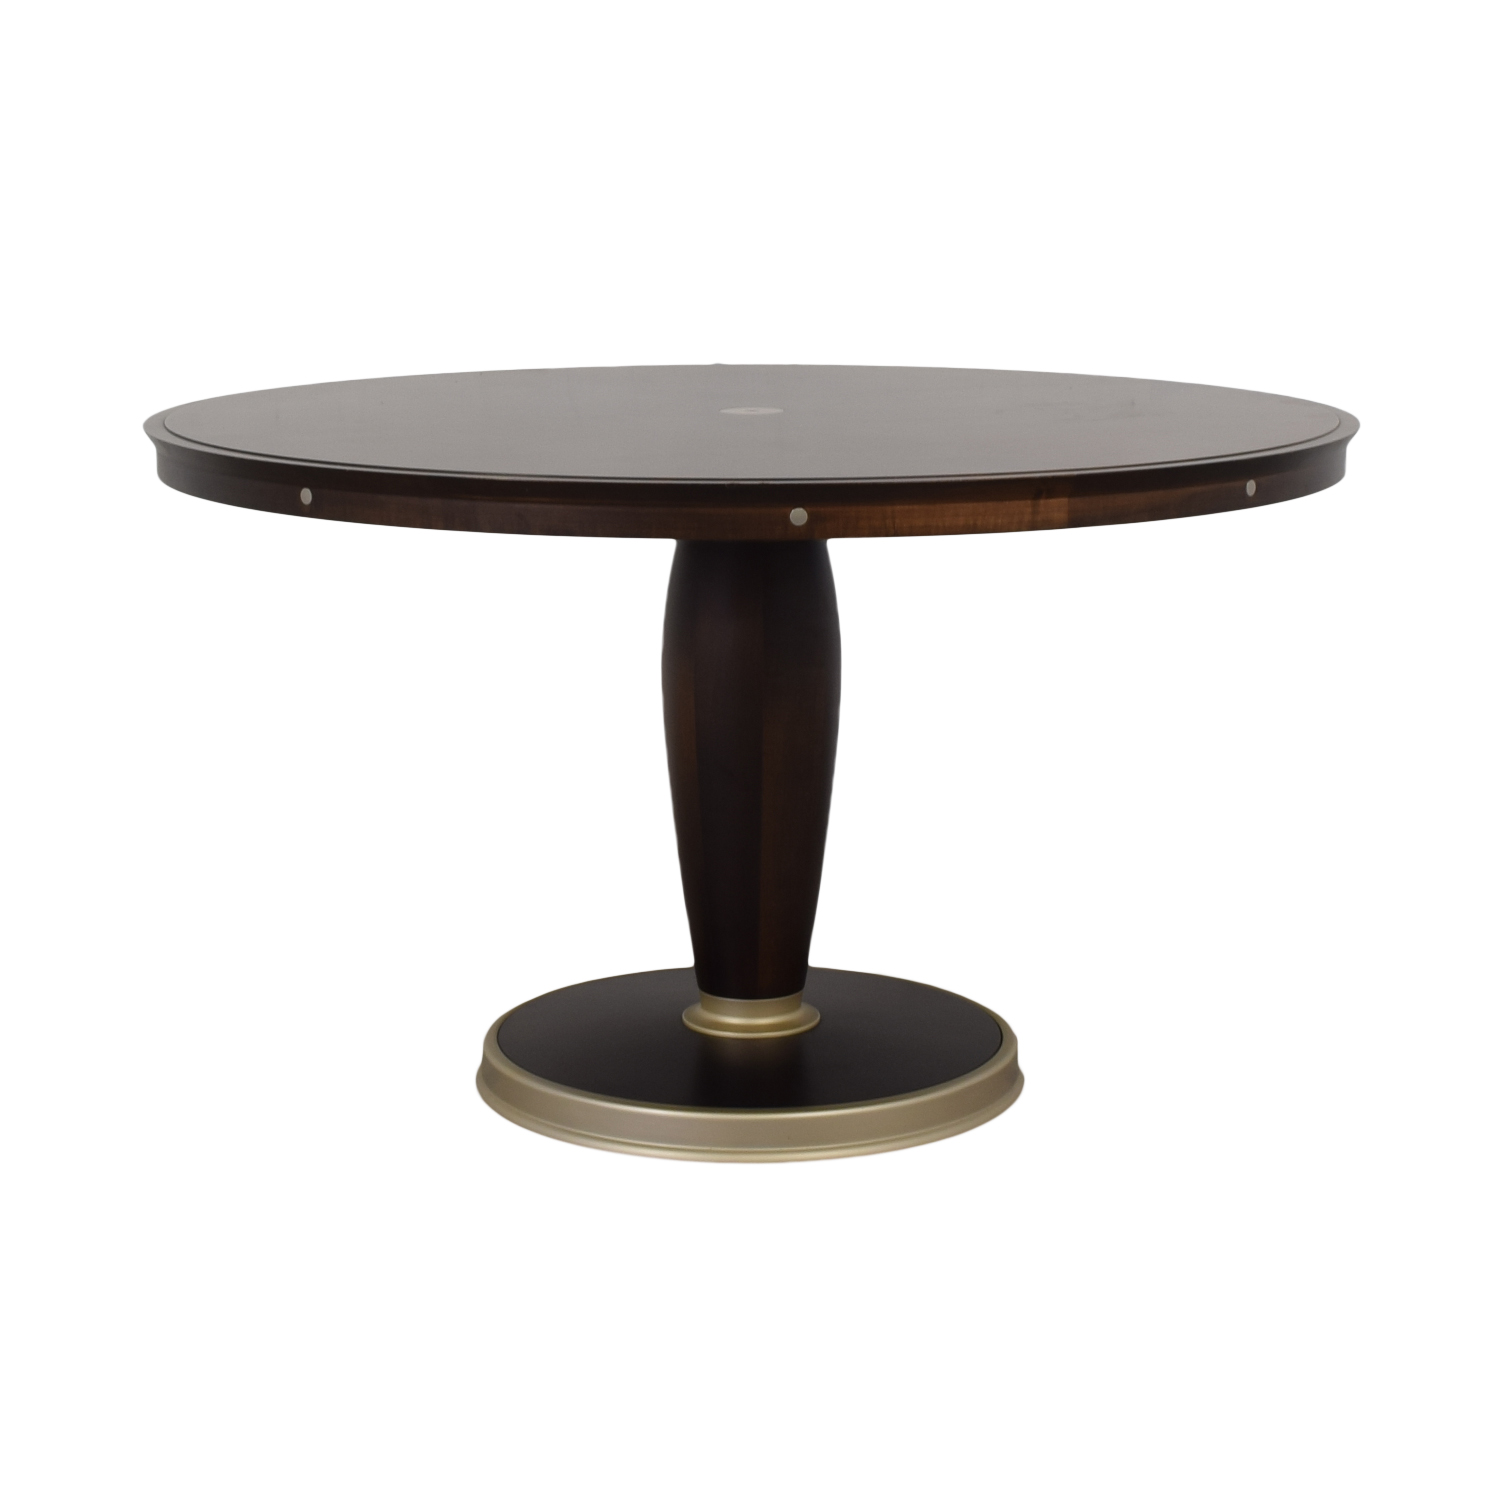 Giorgetti Giorgetti Round Dining Table Tables